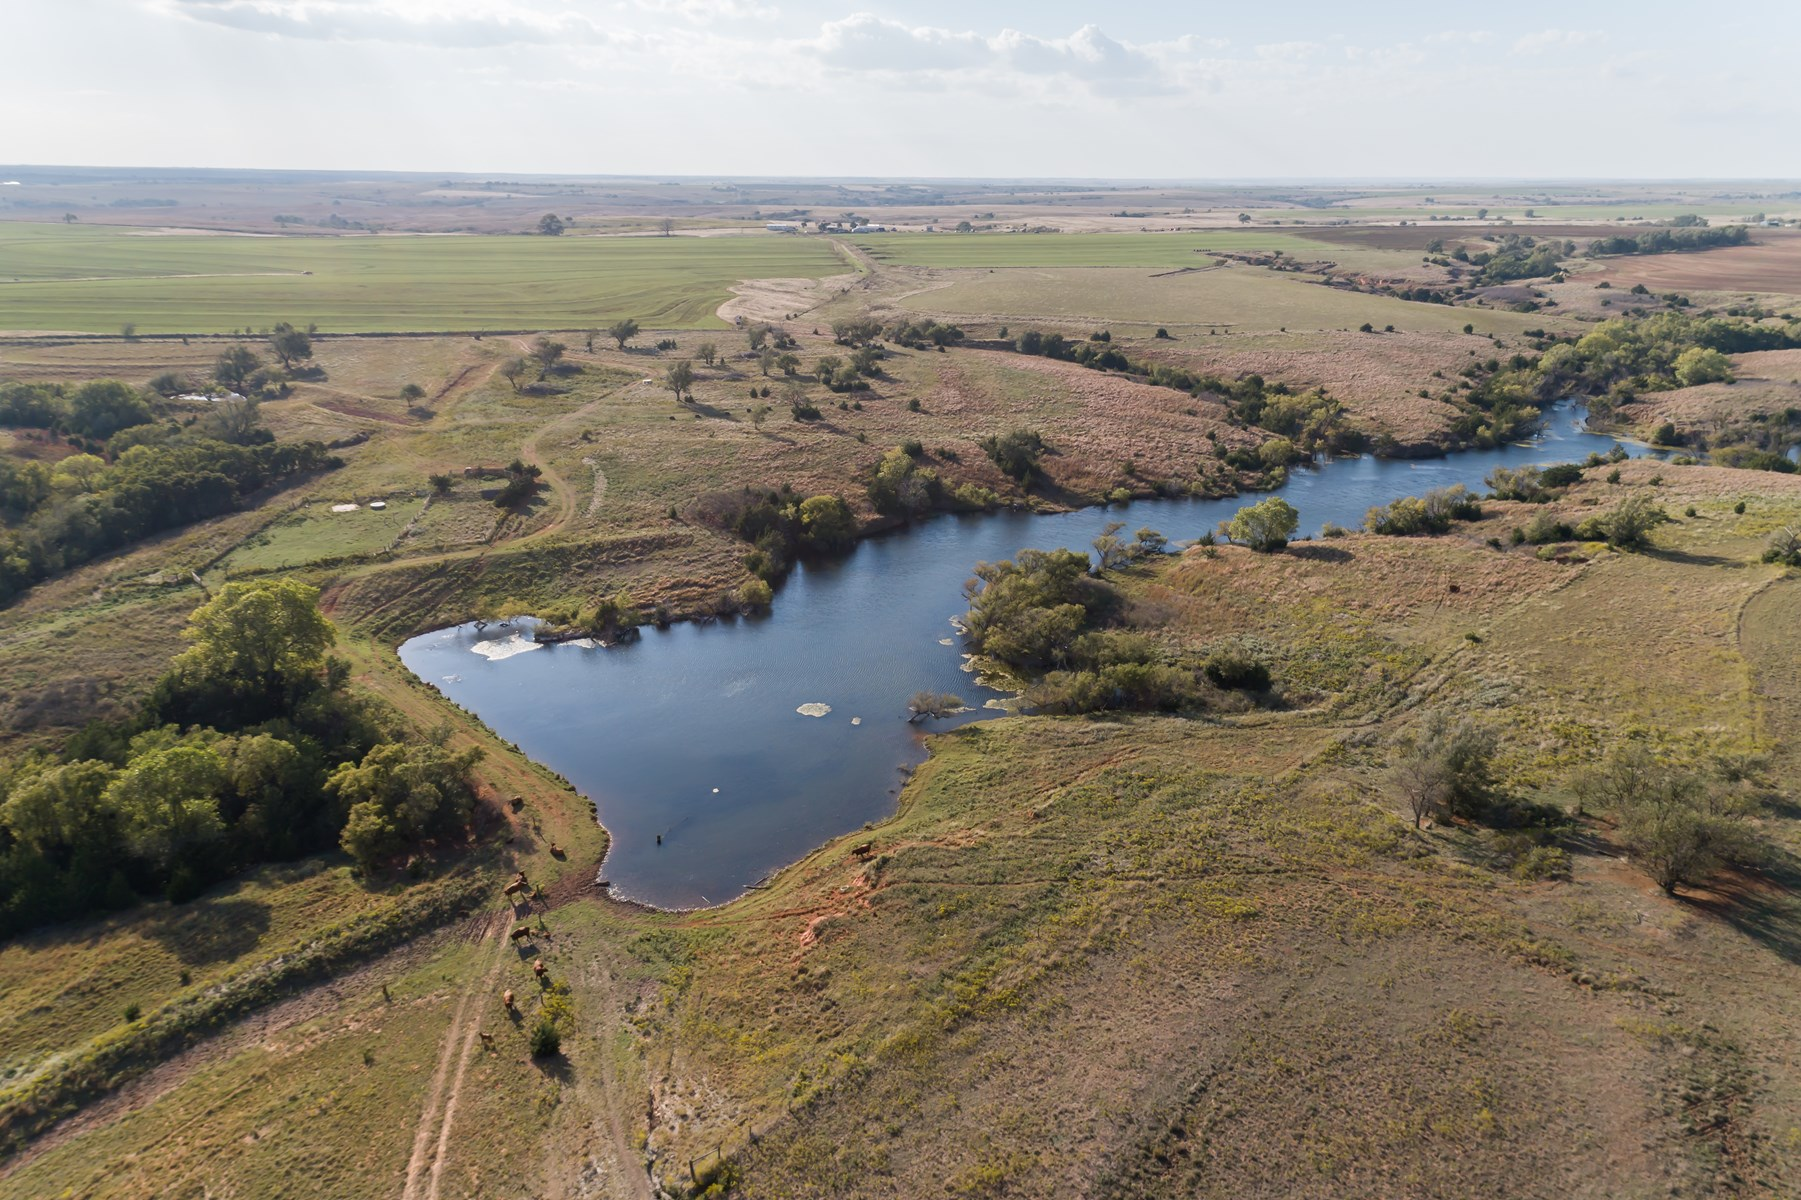 Oklahoma Hunting, Fishing & Ranch Land For Sale